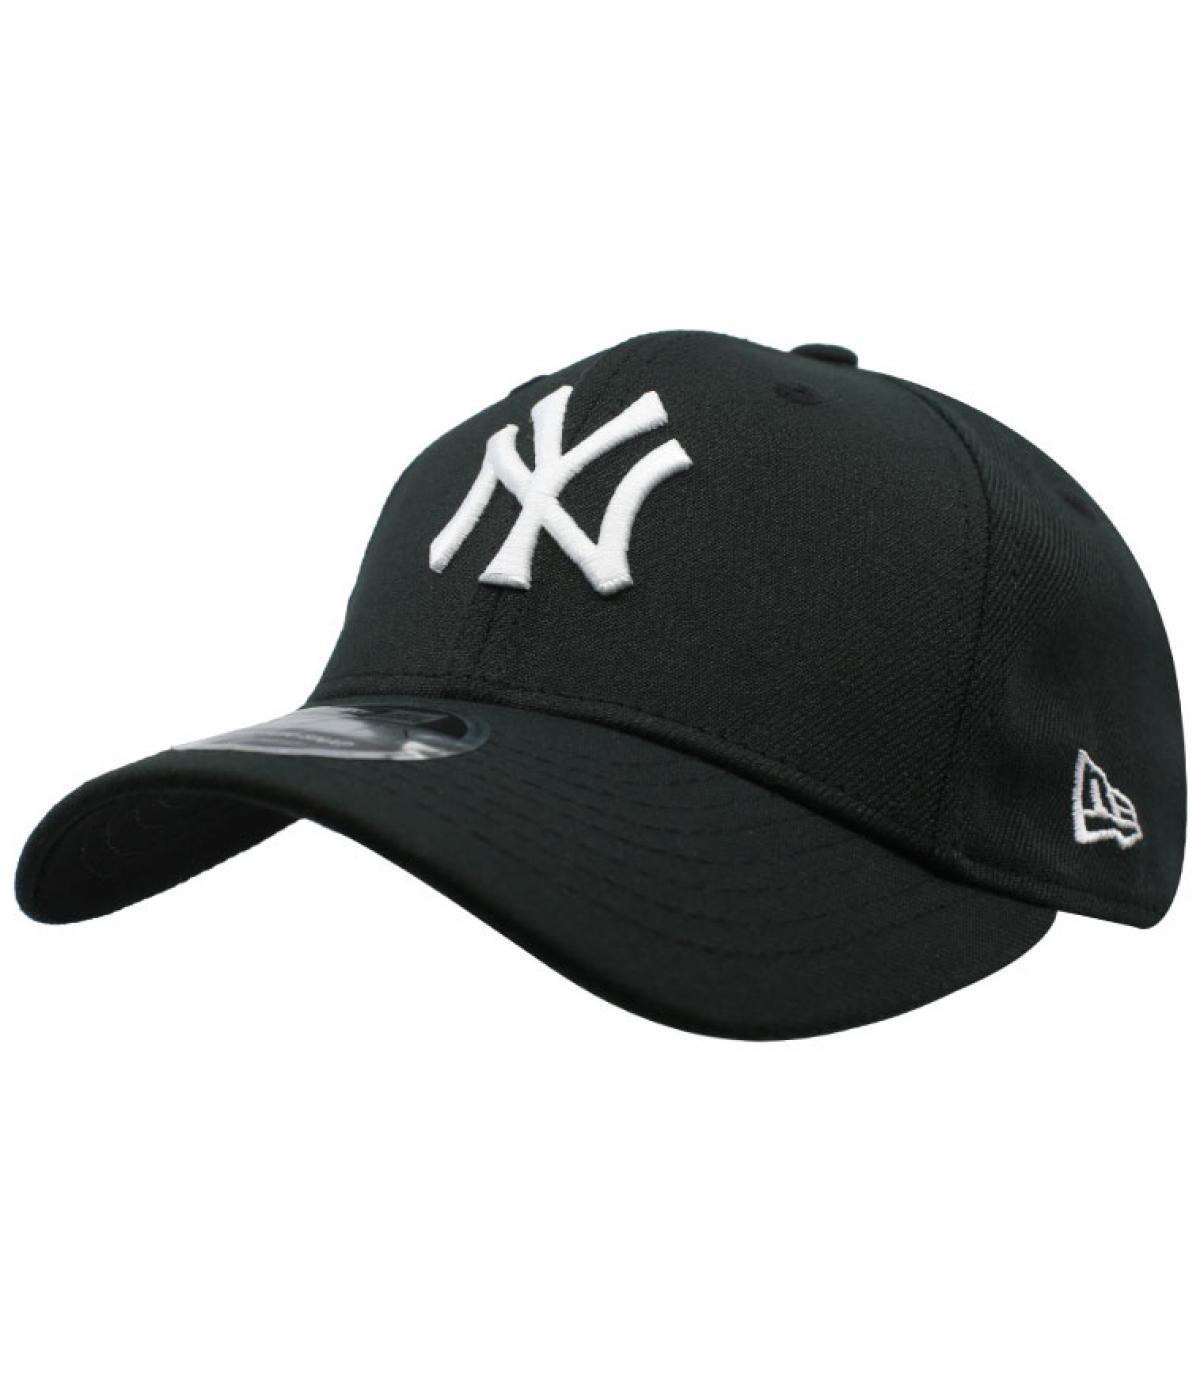 Details Stretch Snap NY 9Fifty - afbeeling 2